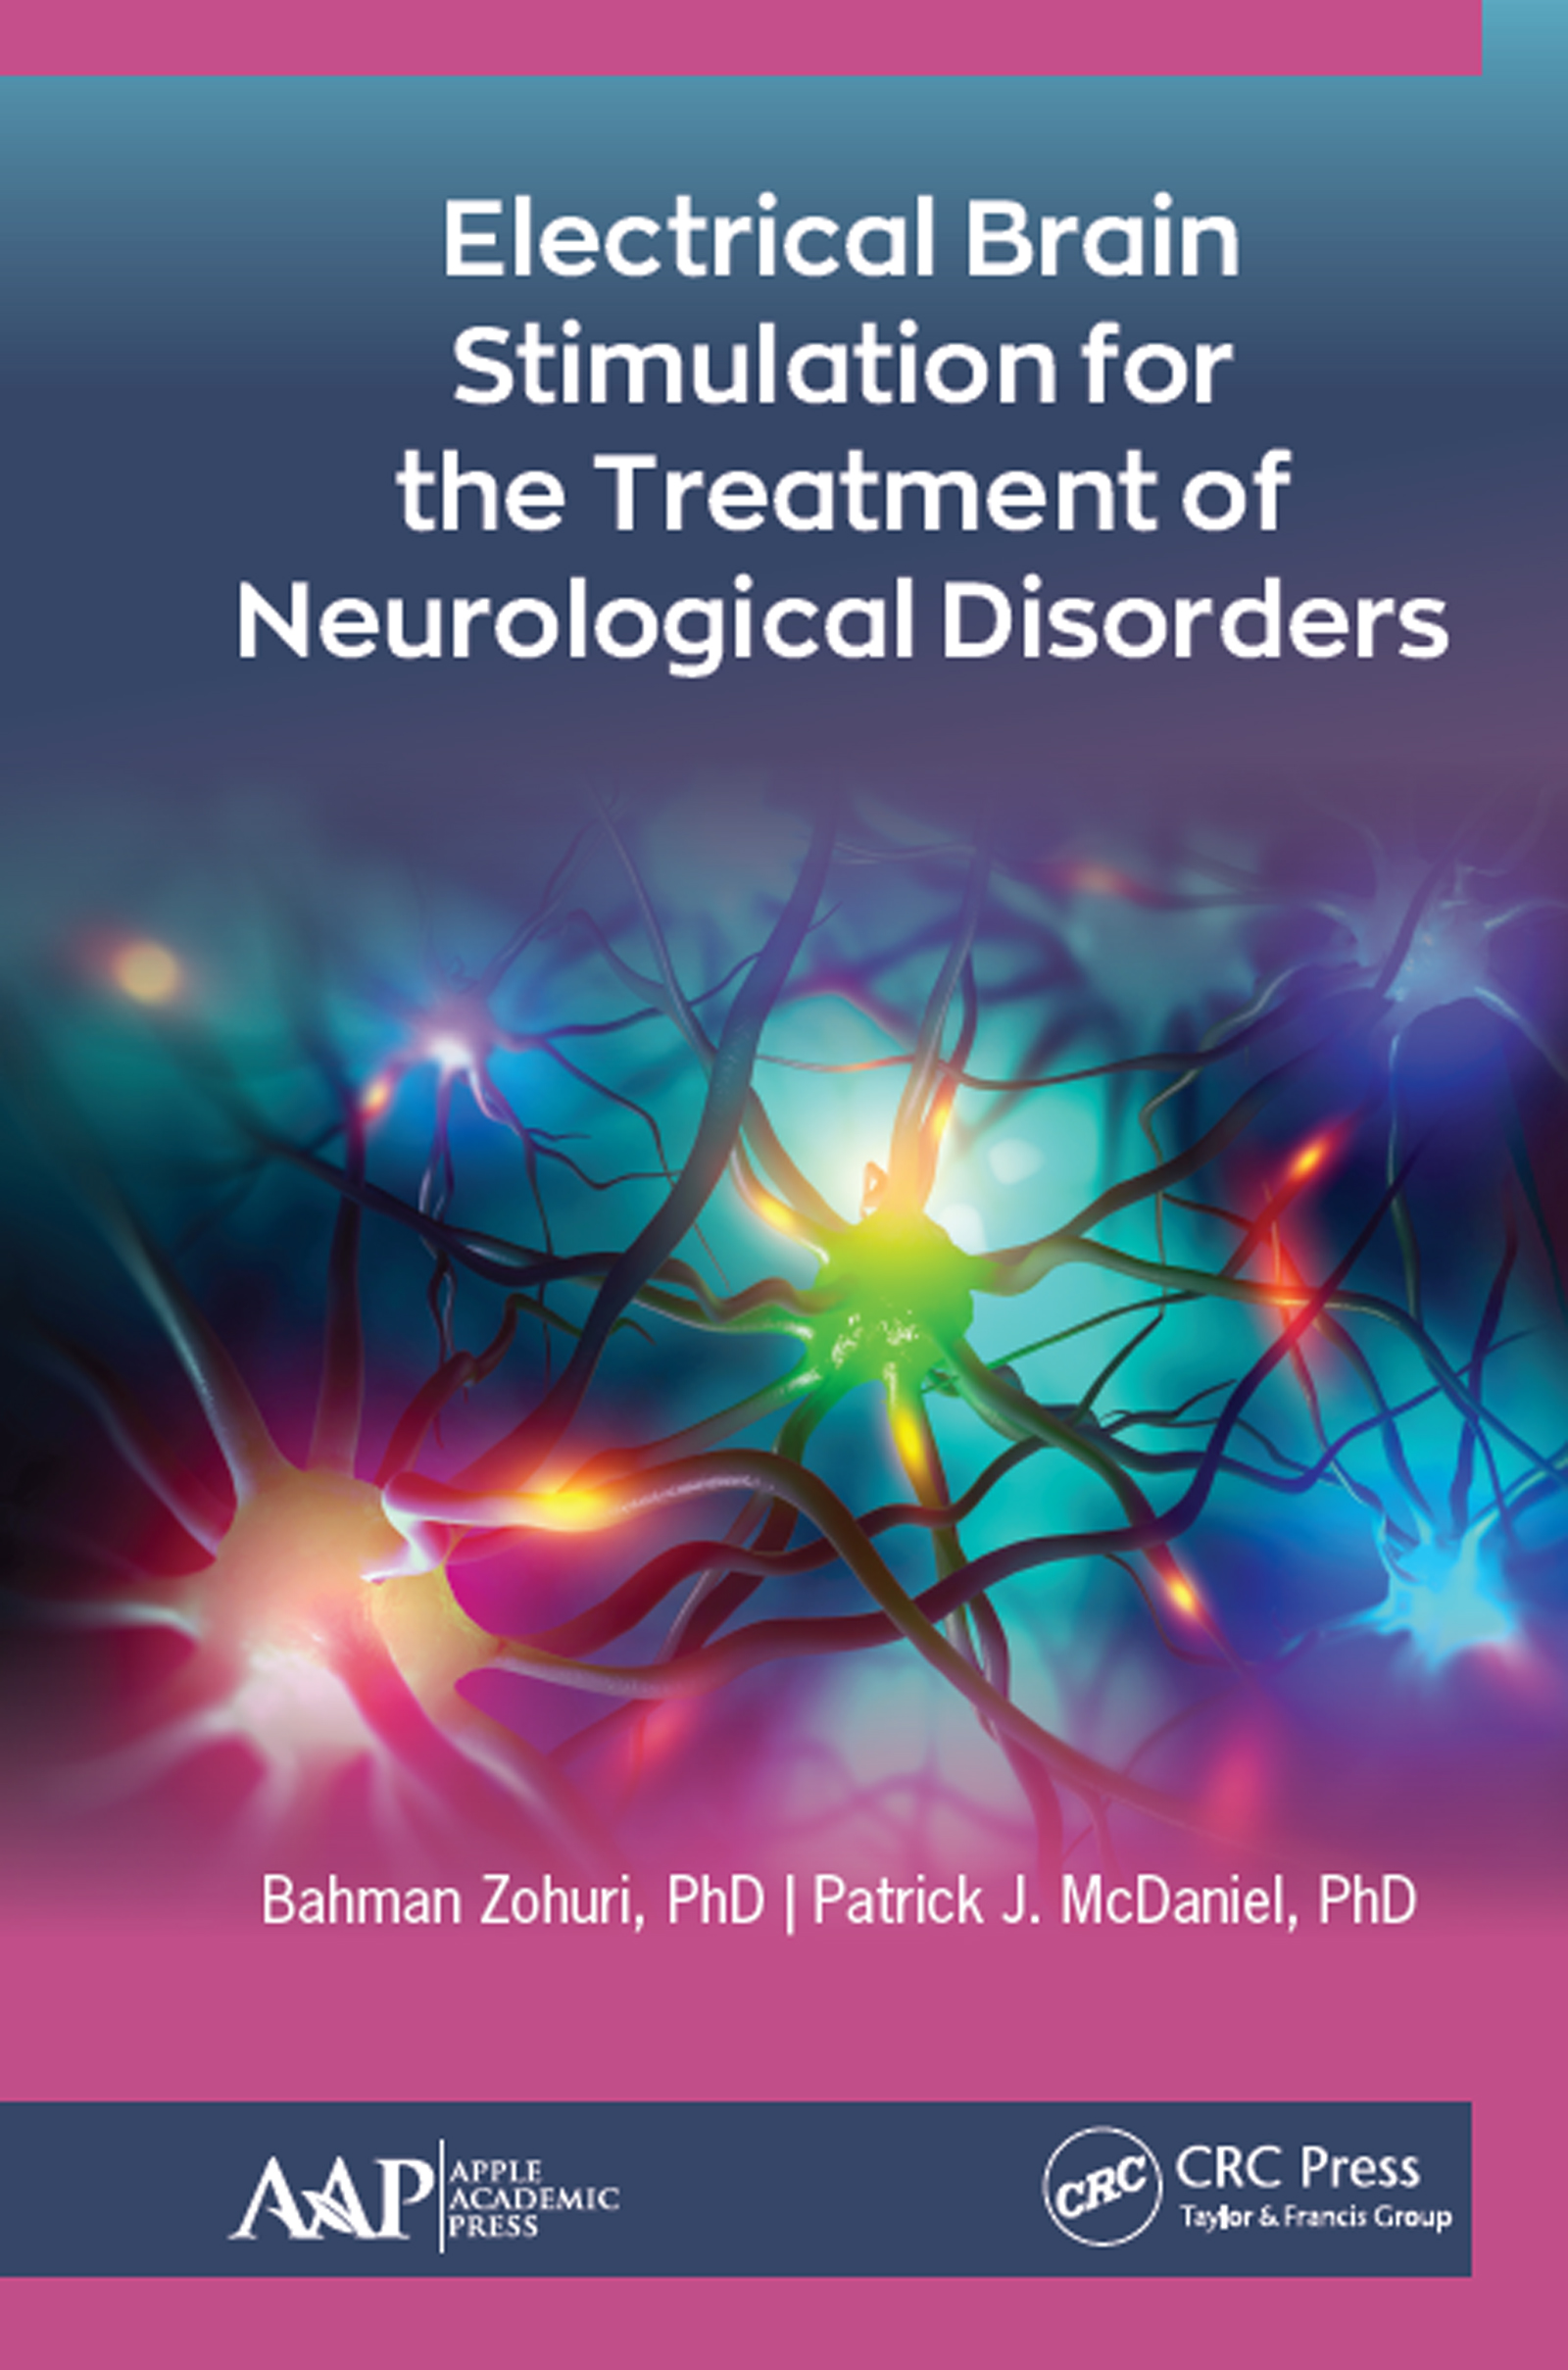 Electrical Brain Stimulation for the Treatment of Neurological Disorders book cover